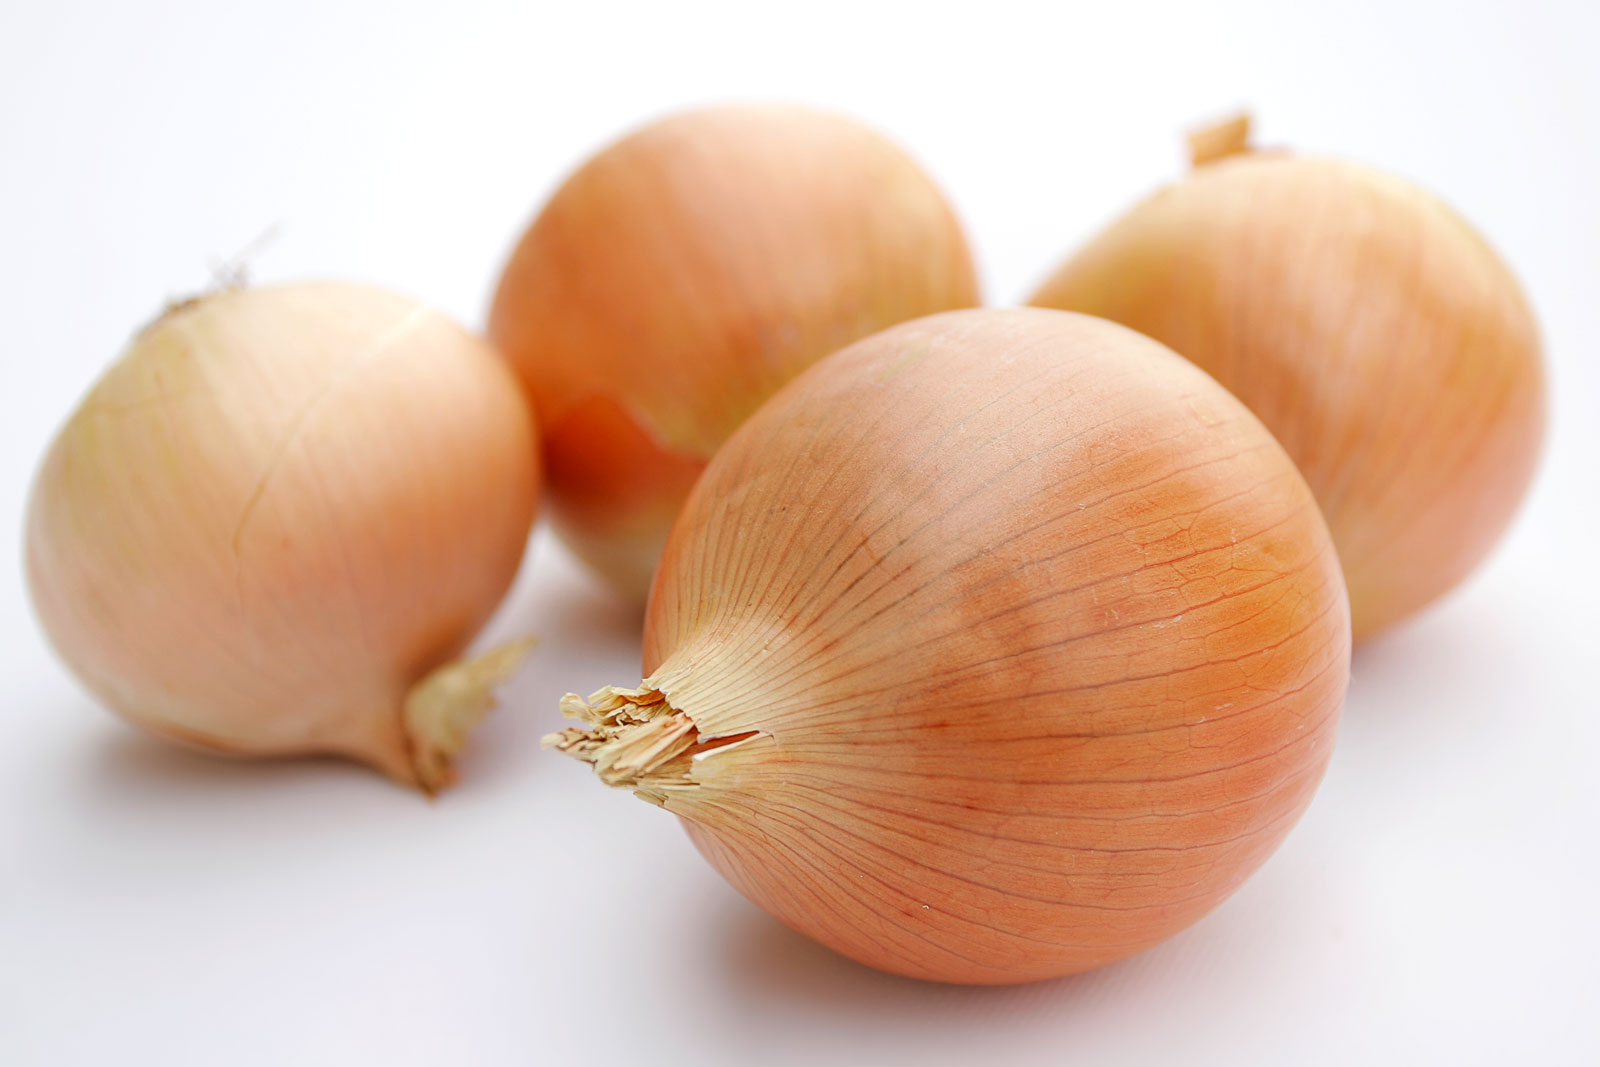 File:Onions.jpg - Wikimedia Commons